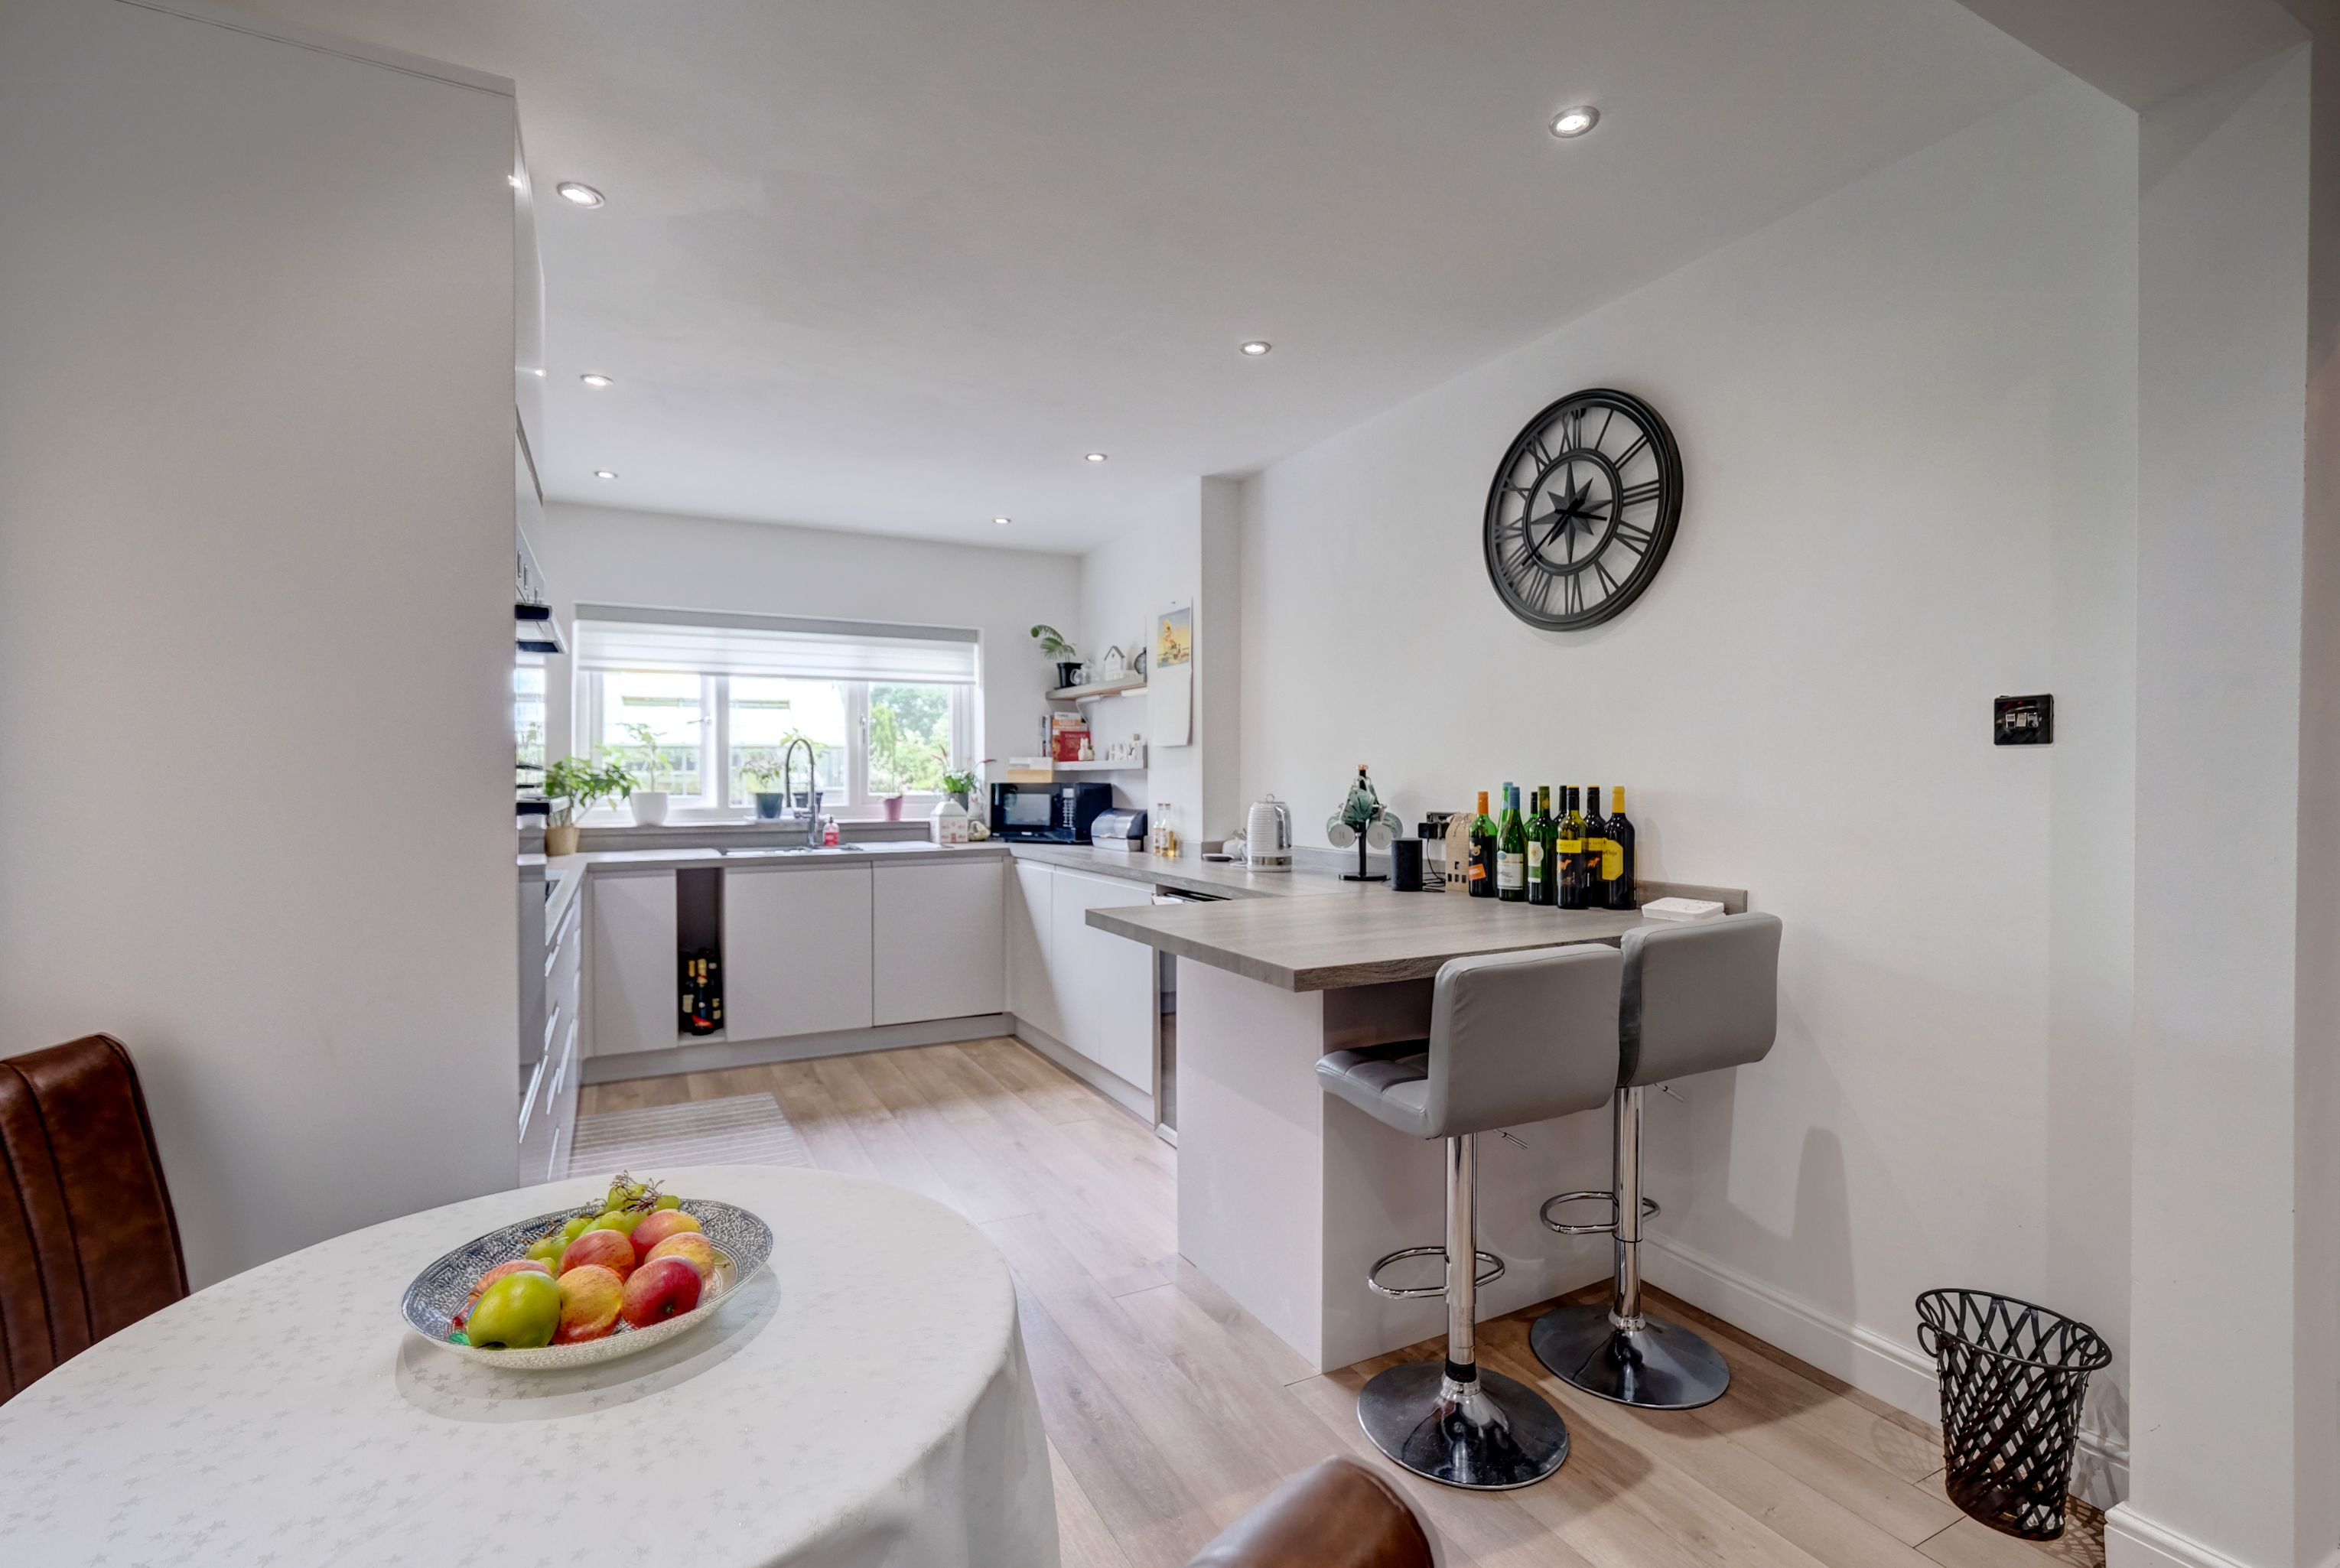 The property briefly comprises an entrance hall, kitchen/diner, lounge, conservatory, dining room/ground floor bedroom, three bedrooms and a shower room. With benefits including gas central heating (with recently fitted boiler), double glazing, off-road parking for multiple vehicles, a south-facing garden and an integral garage.